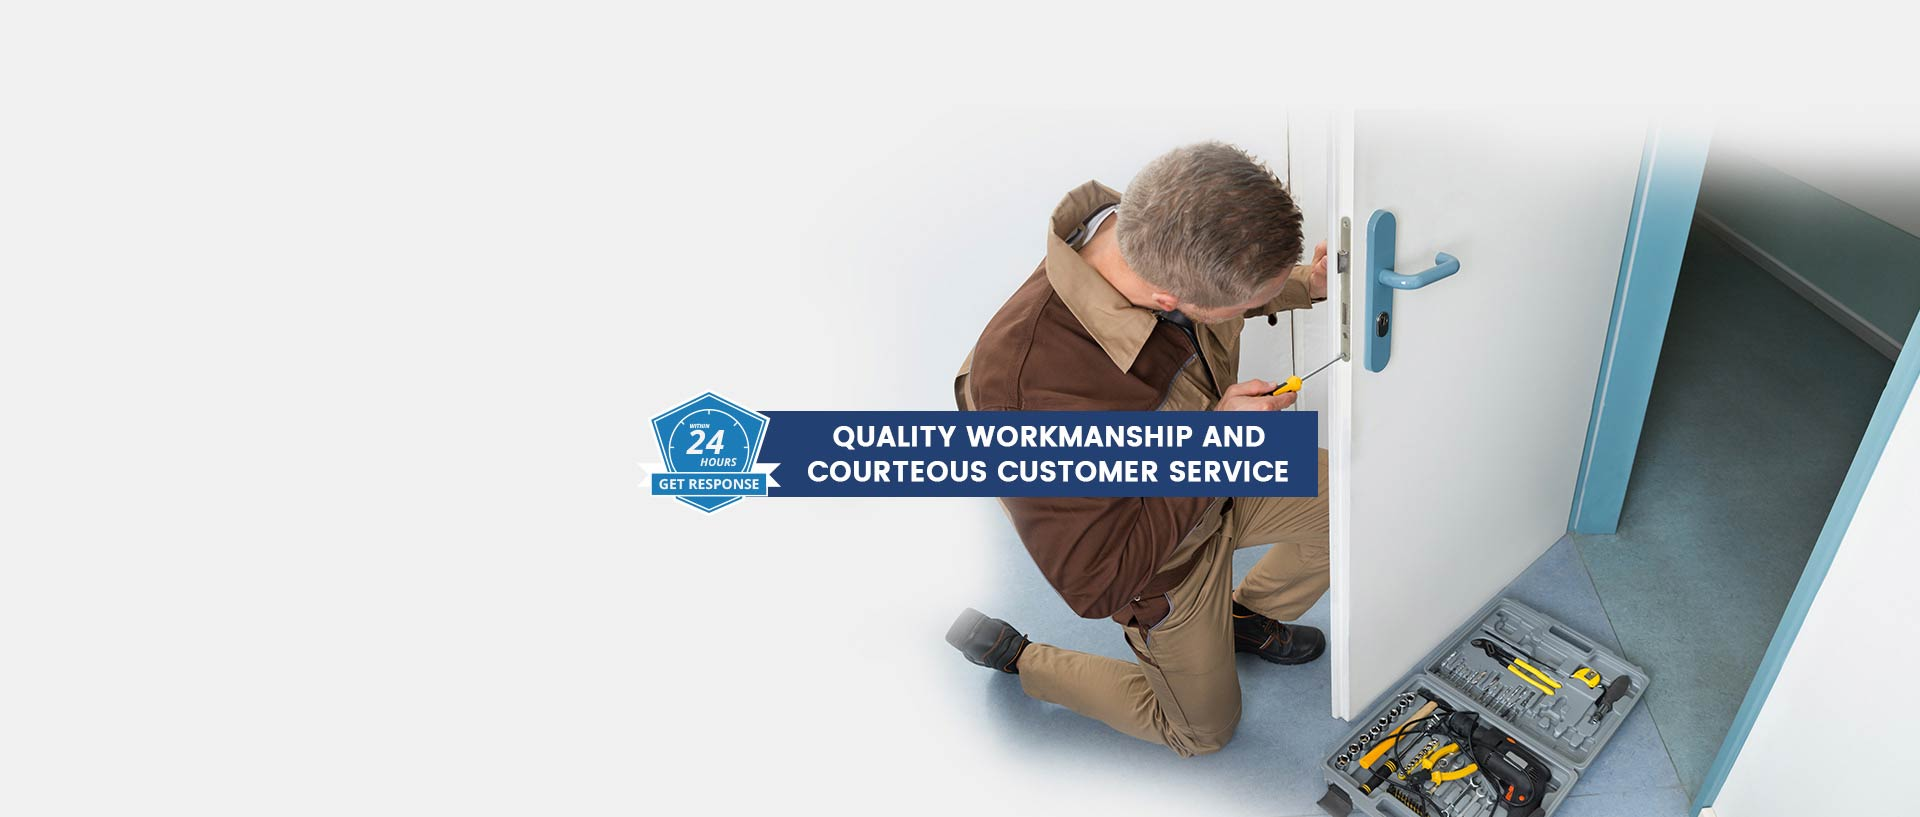 Quality Workmanship and Courteous Customer Service